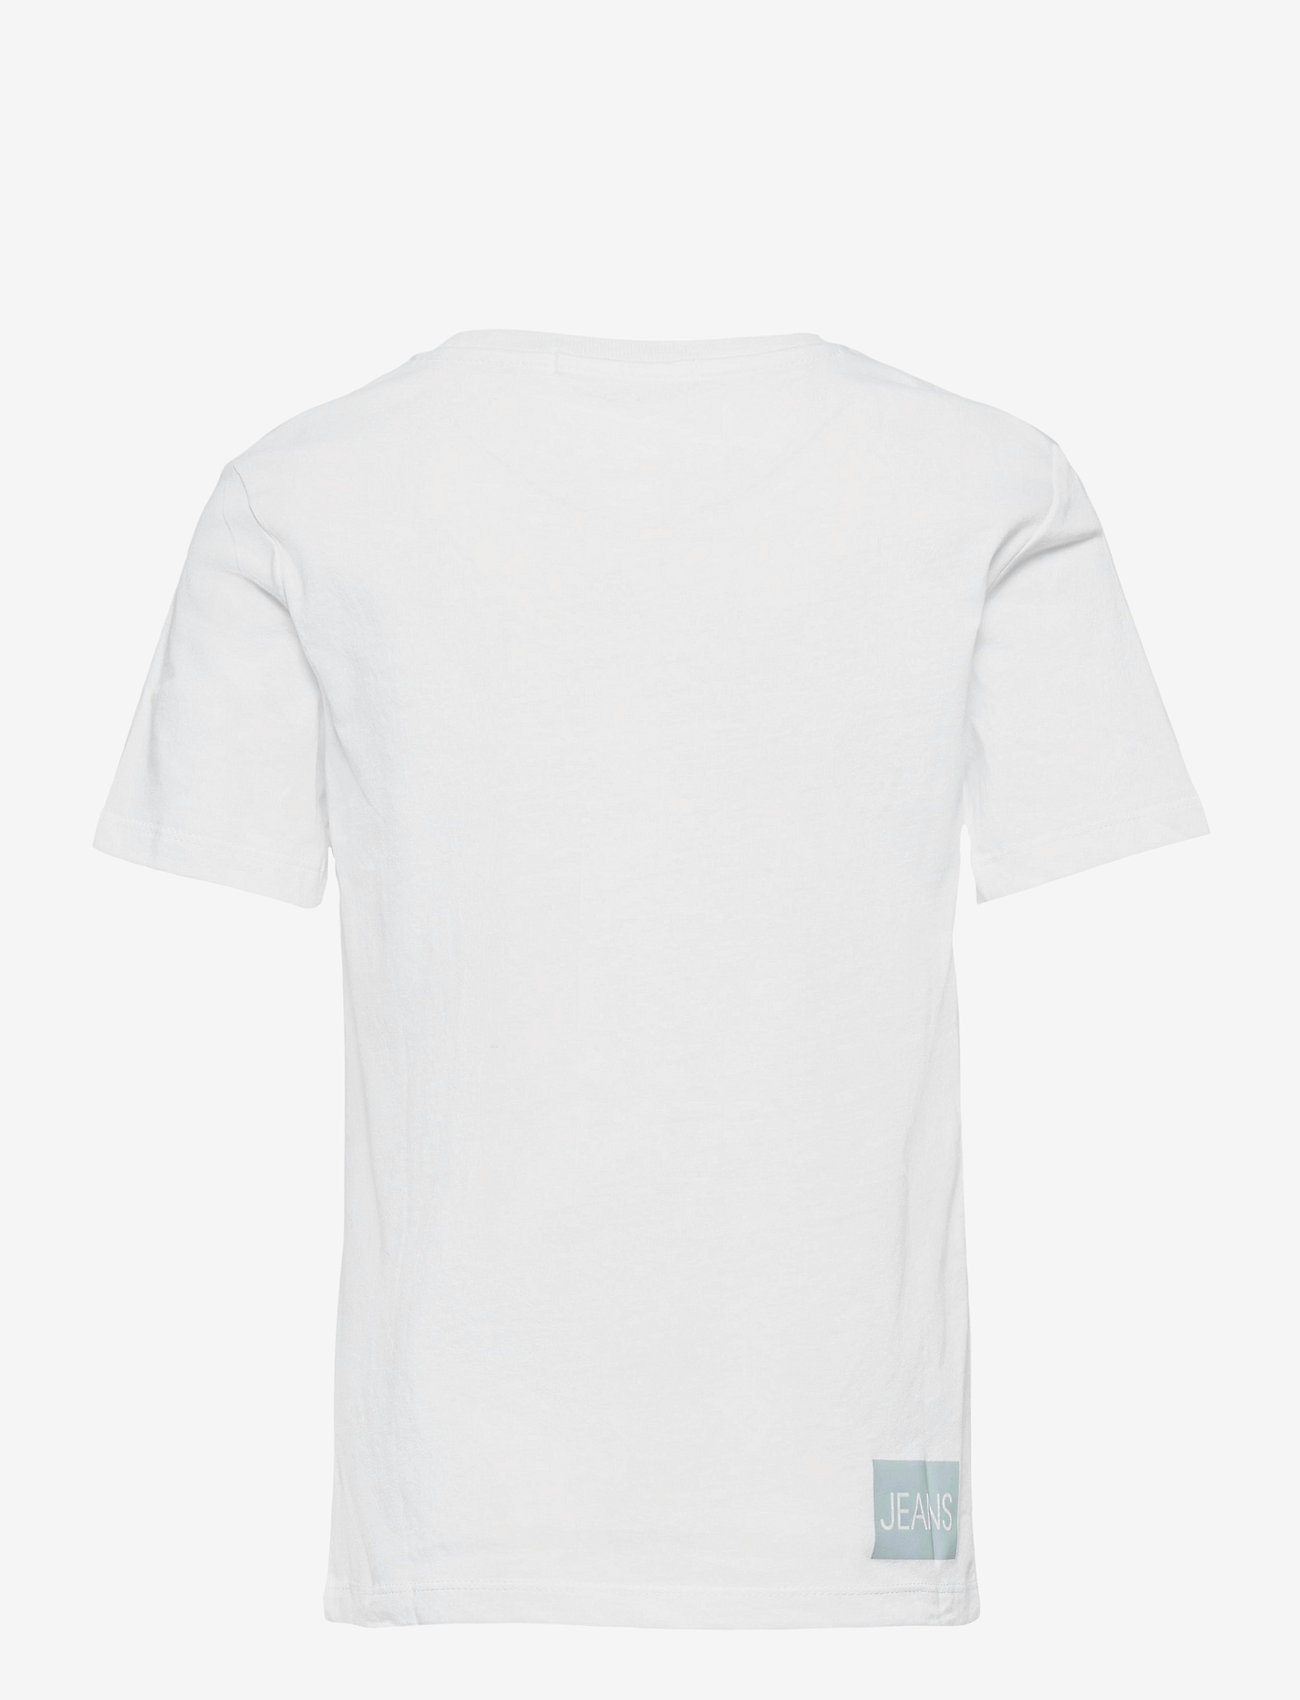 Calvin Klein - INSTITUTIONAL SS T-SHIRT - t-shirts - bright white / blue - 1